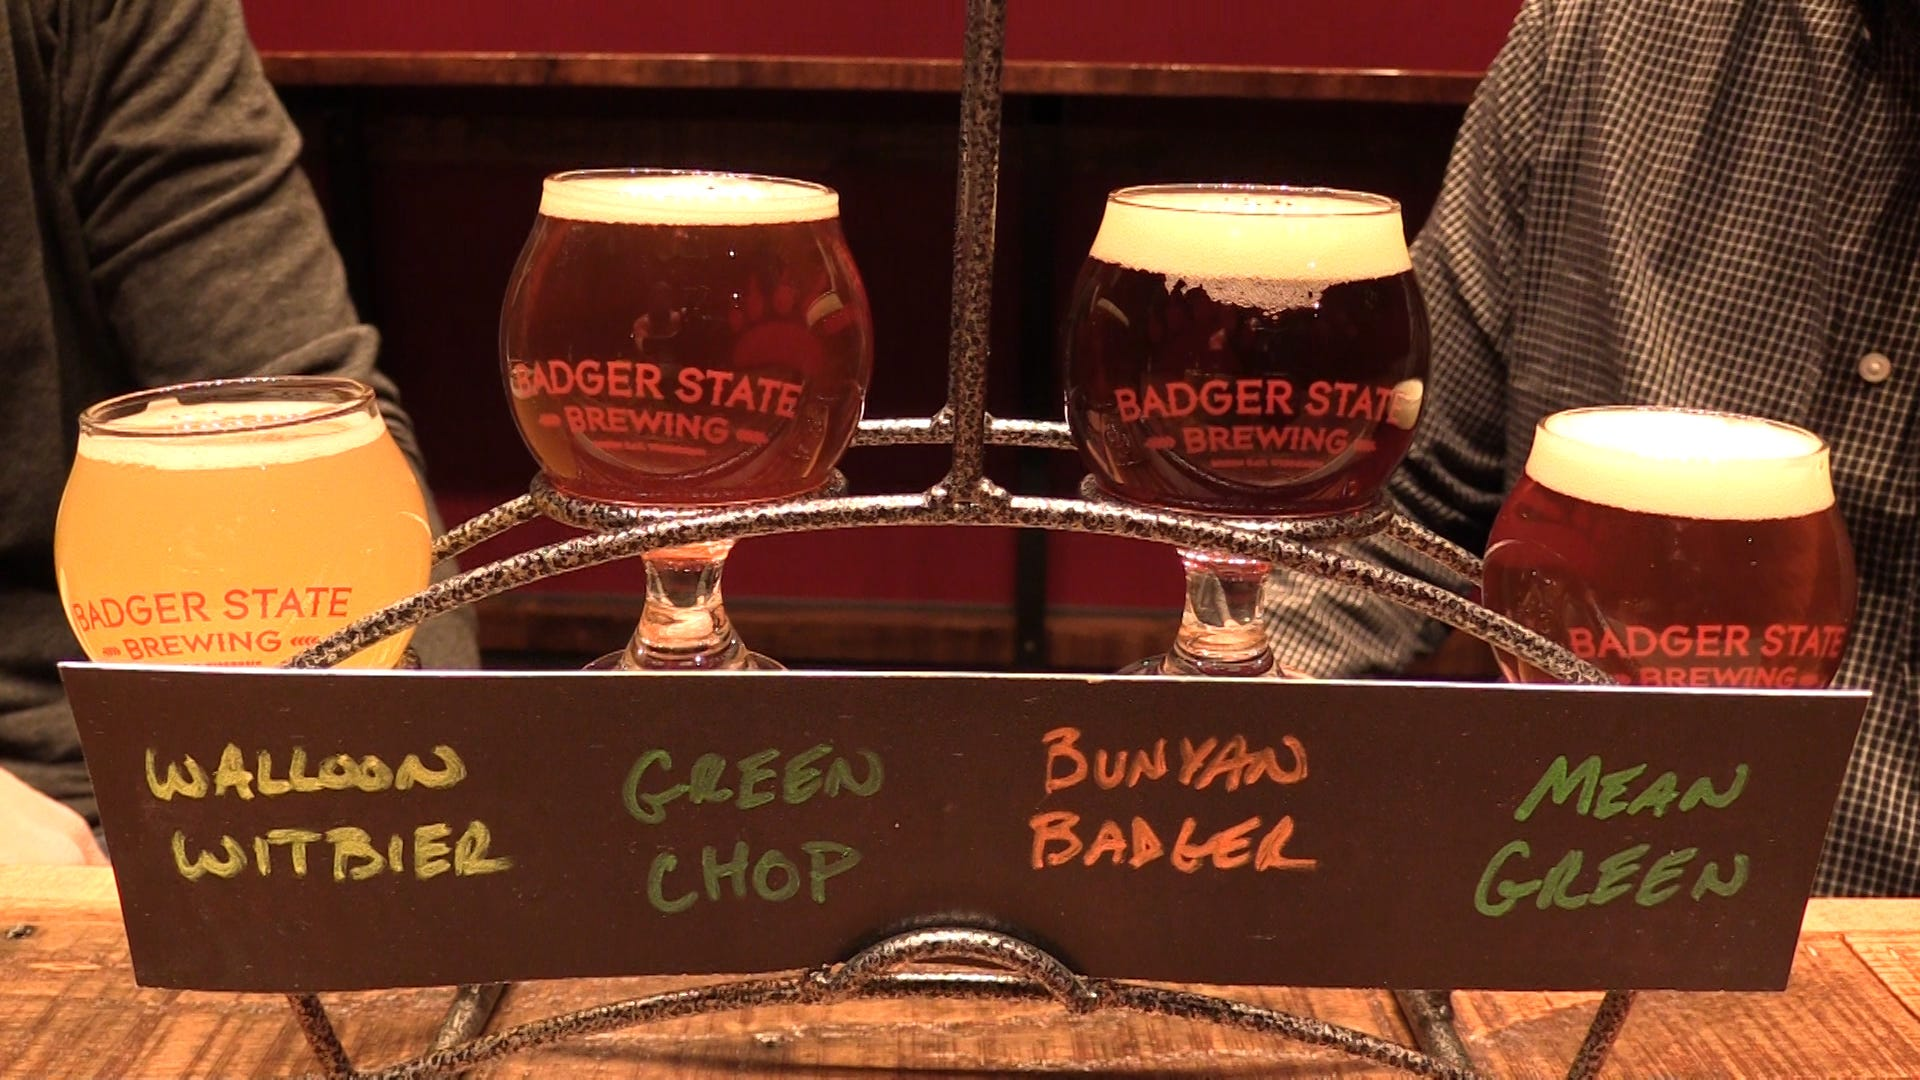 WisBrewView: Badger State Brewing crafts a variety of beer